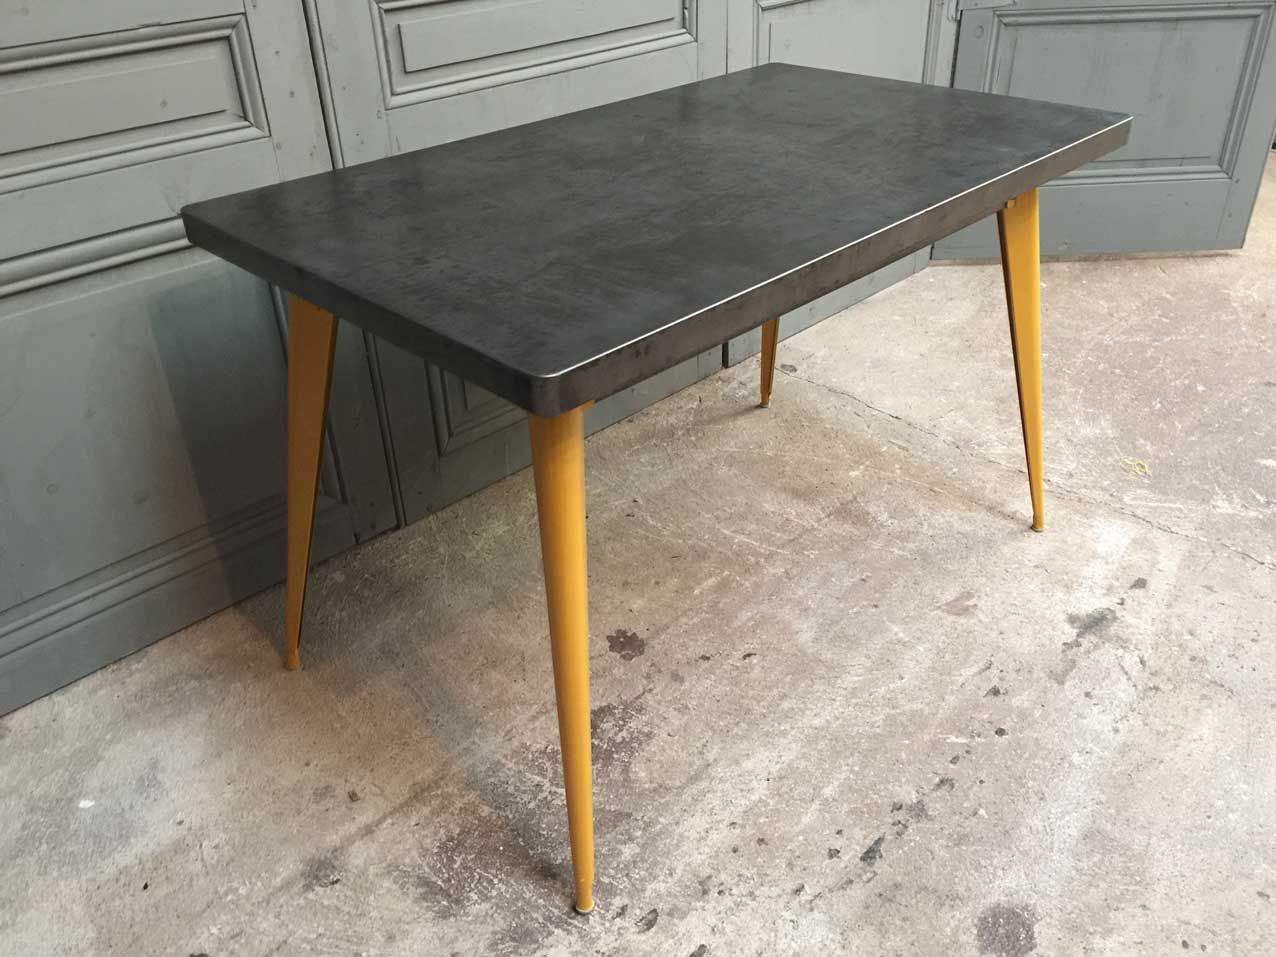 xavier pauchard french industrial dining room furniture. Xavier Pauchard French Industrial Dining Room Furniture. Furniture T55 Table With Yellow Feet By